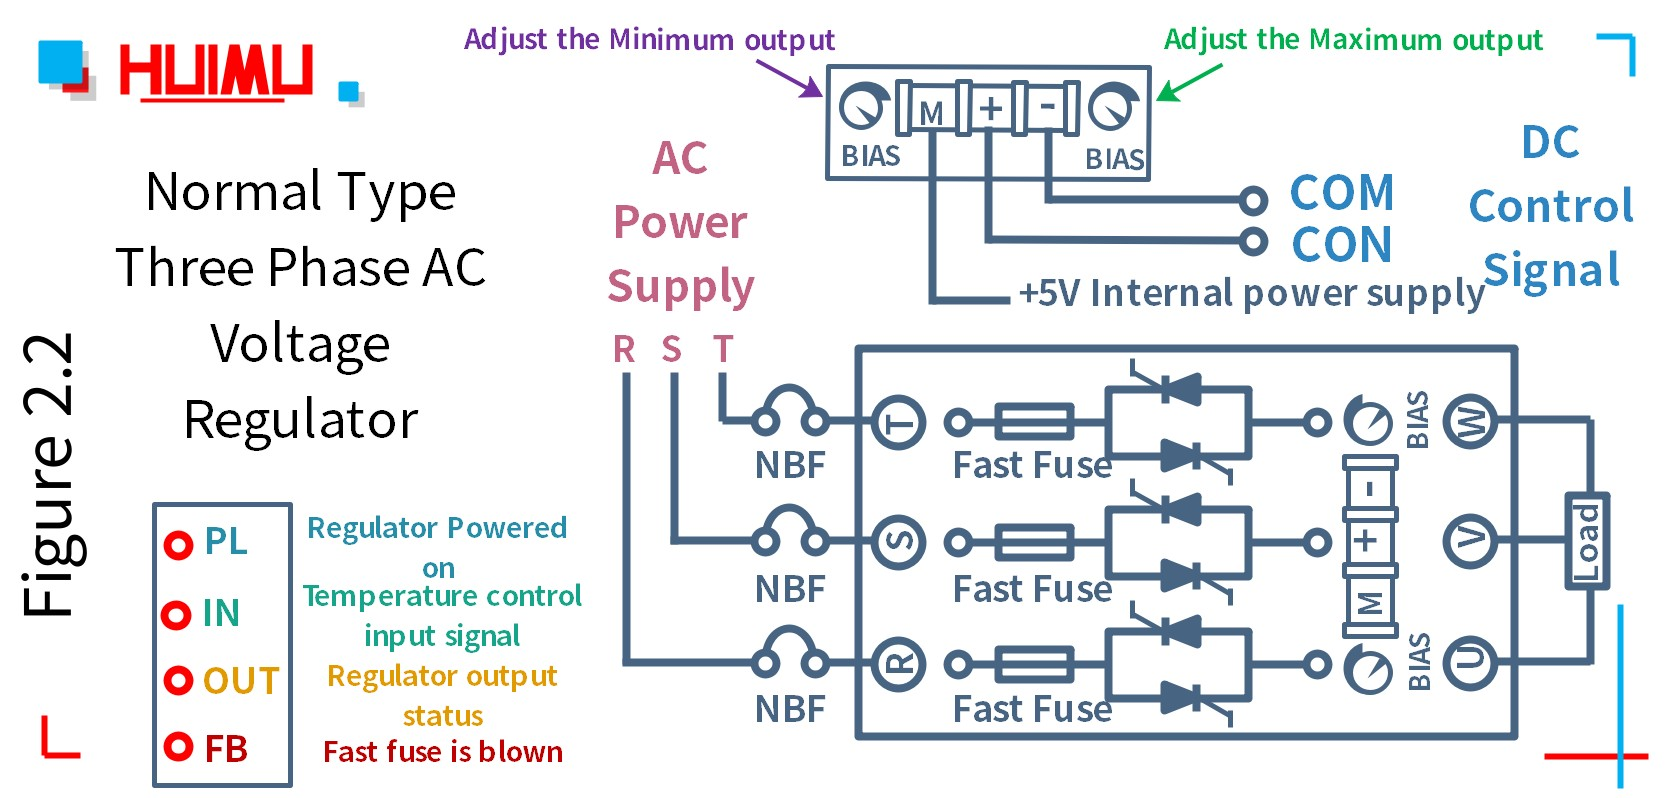 How to wire MGR mager MGR-SCR-100LA-H, MGR-SCR-300LA-H normal type three phase AC voltage regulator? More detail via www.@huimultd.com